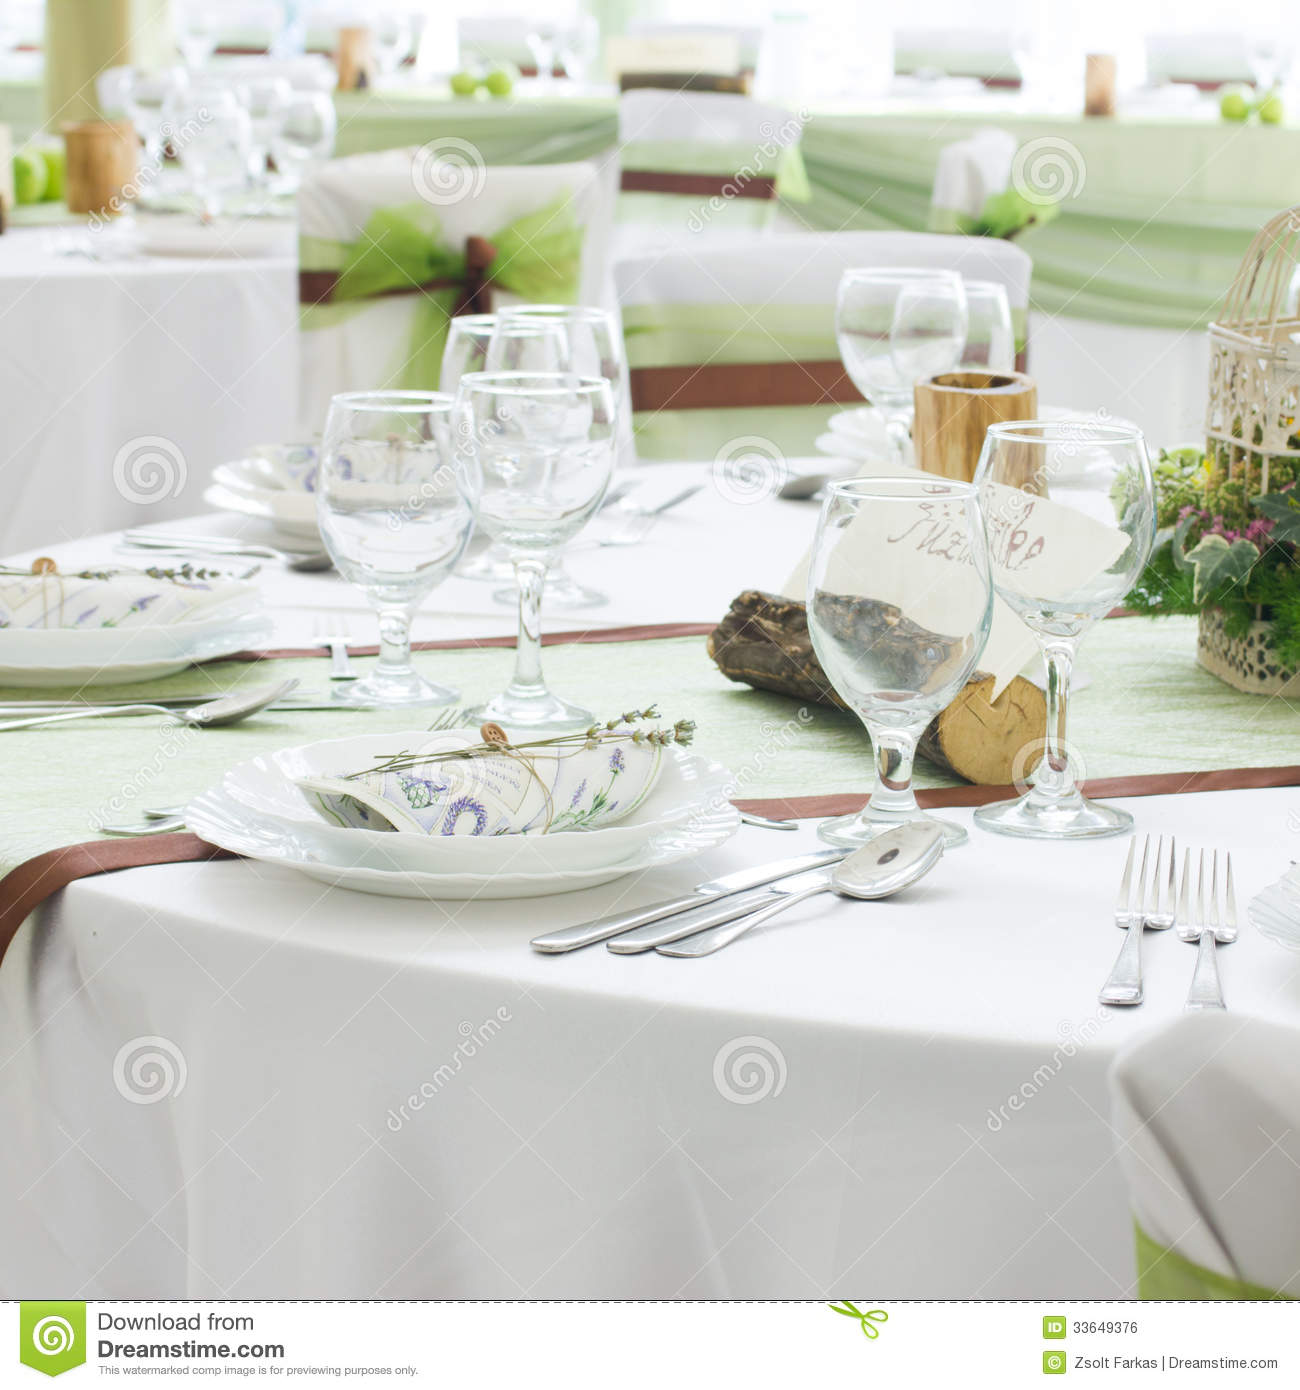 Wedding table set with decoration for fine dining or for Decoration table